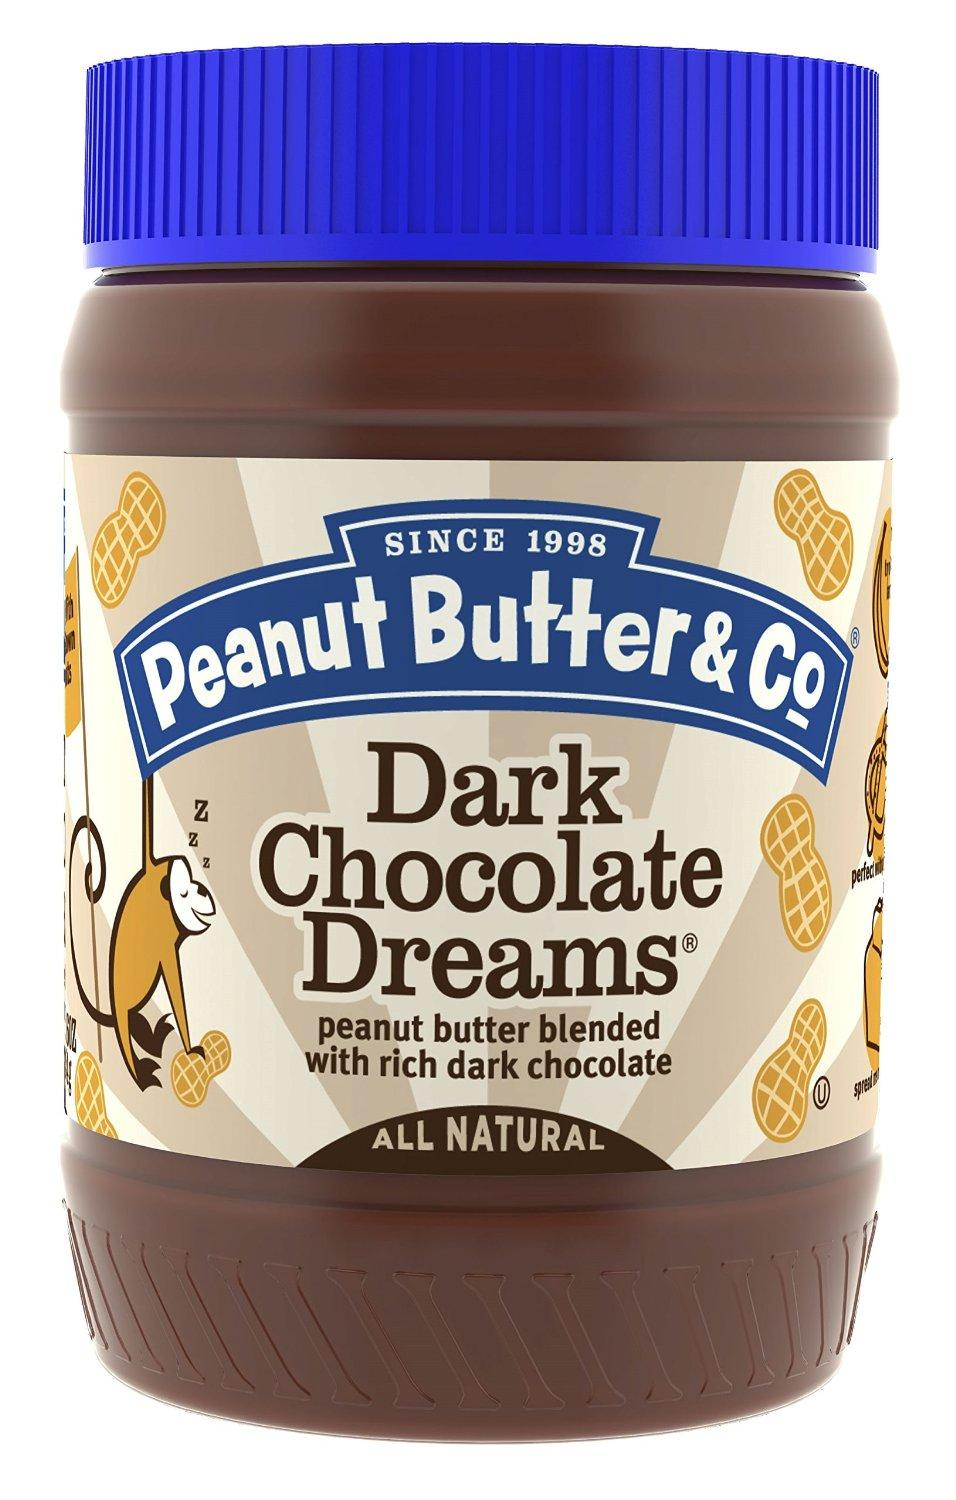 $16.83 Peanut Butter & Co. Peanut Butter, Dark Chocolate Dreams, 16-Ounce Jars (Pack of 6)